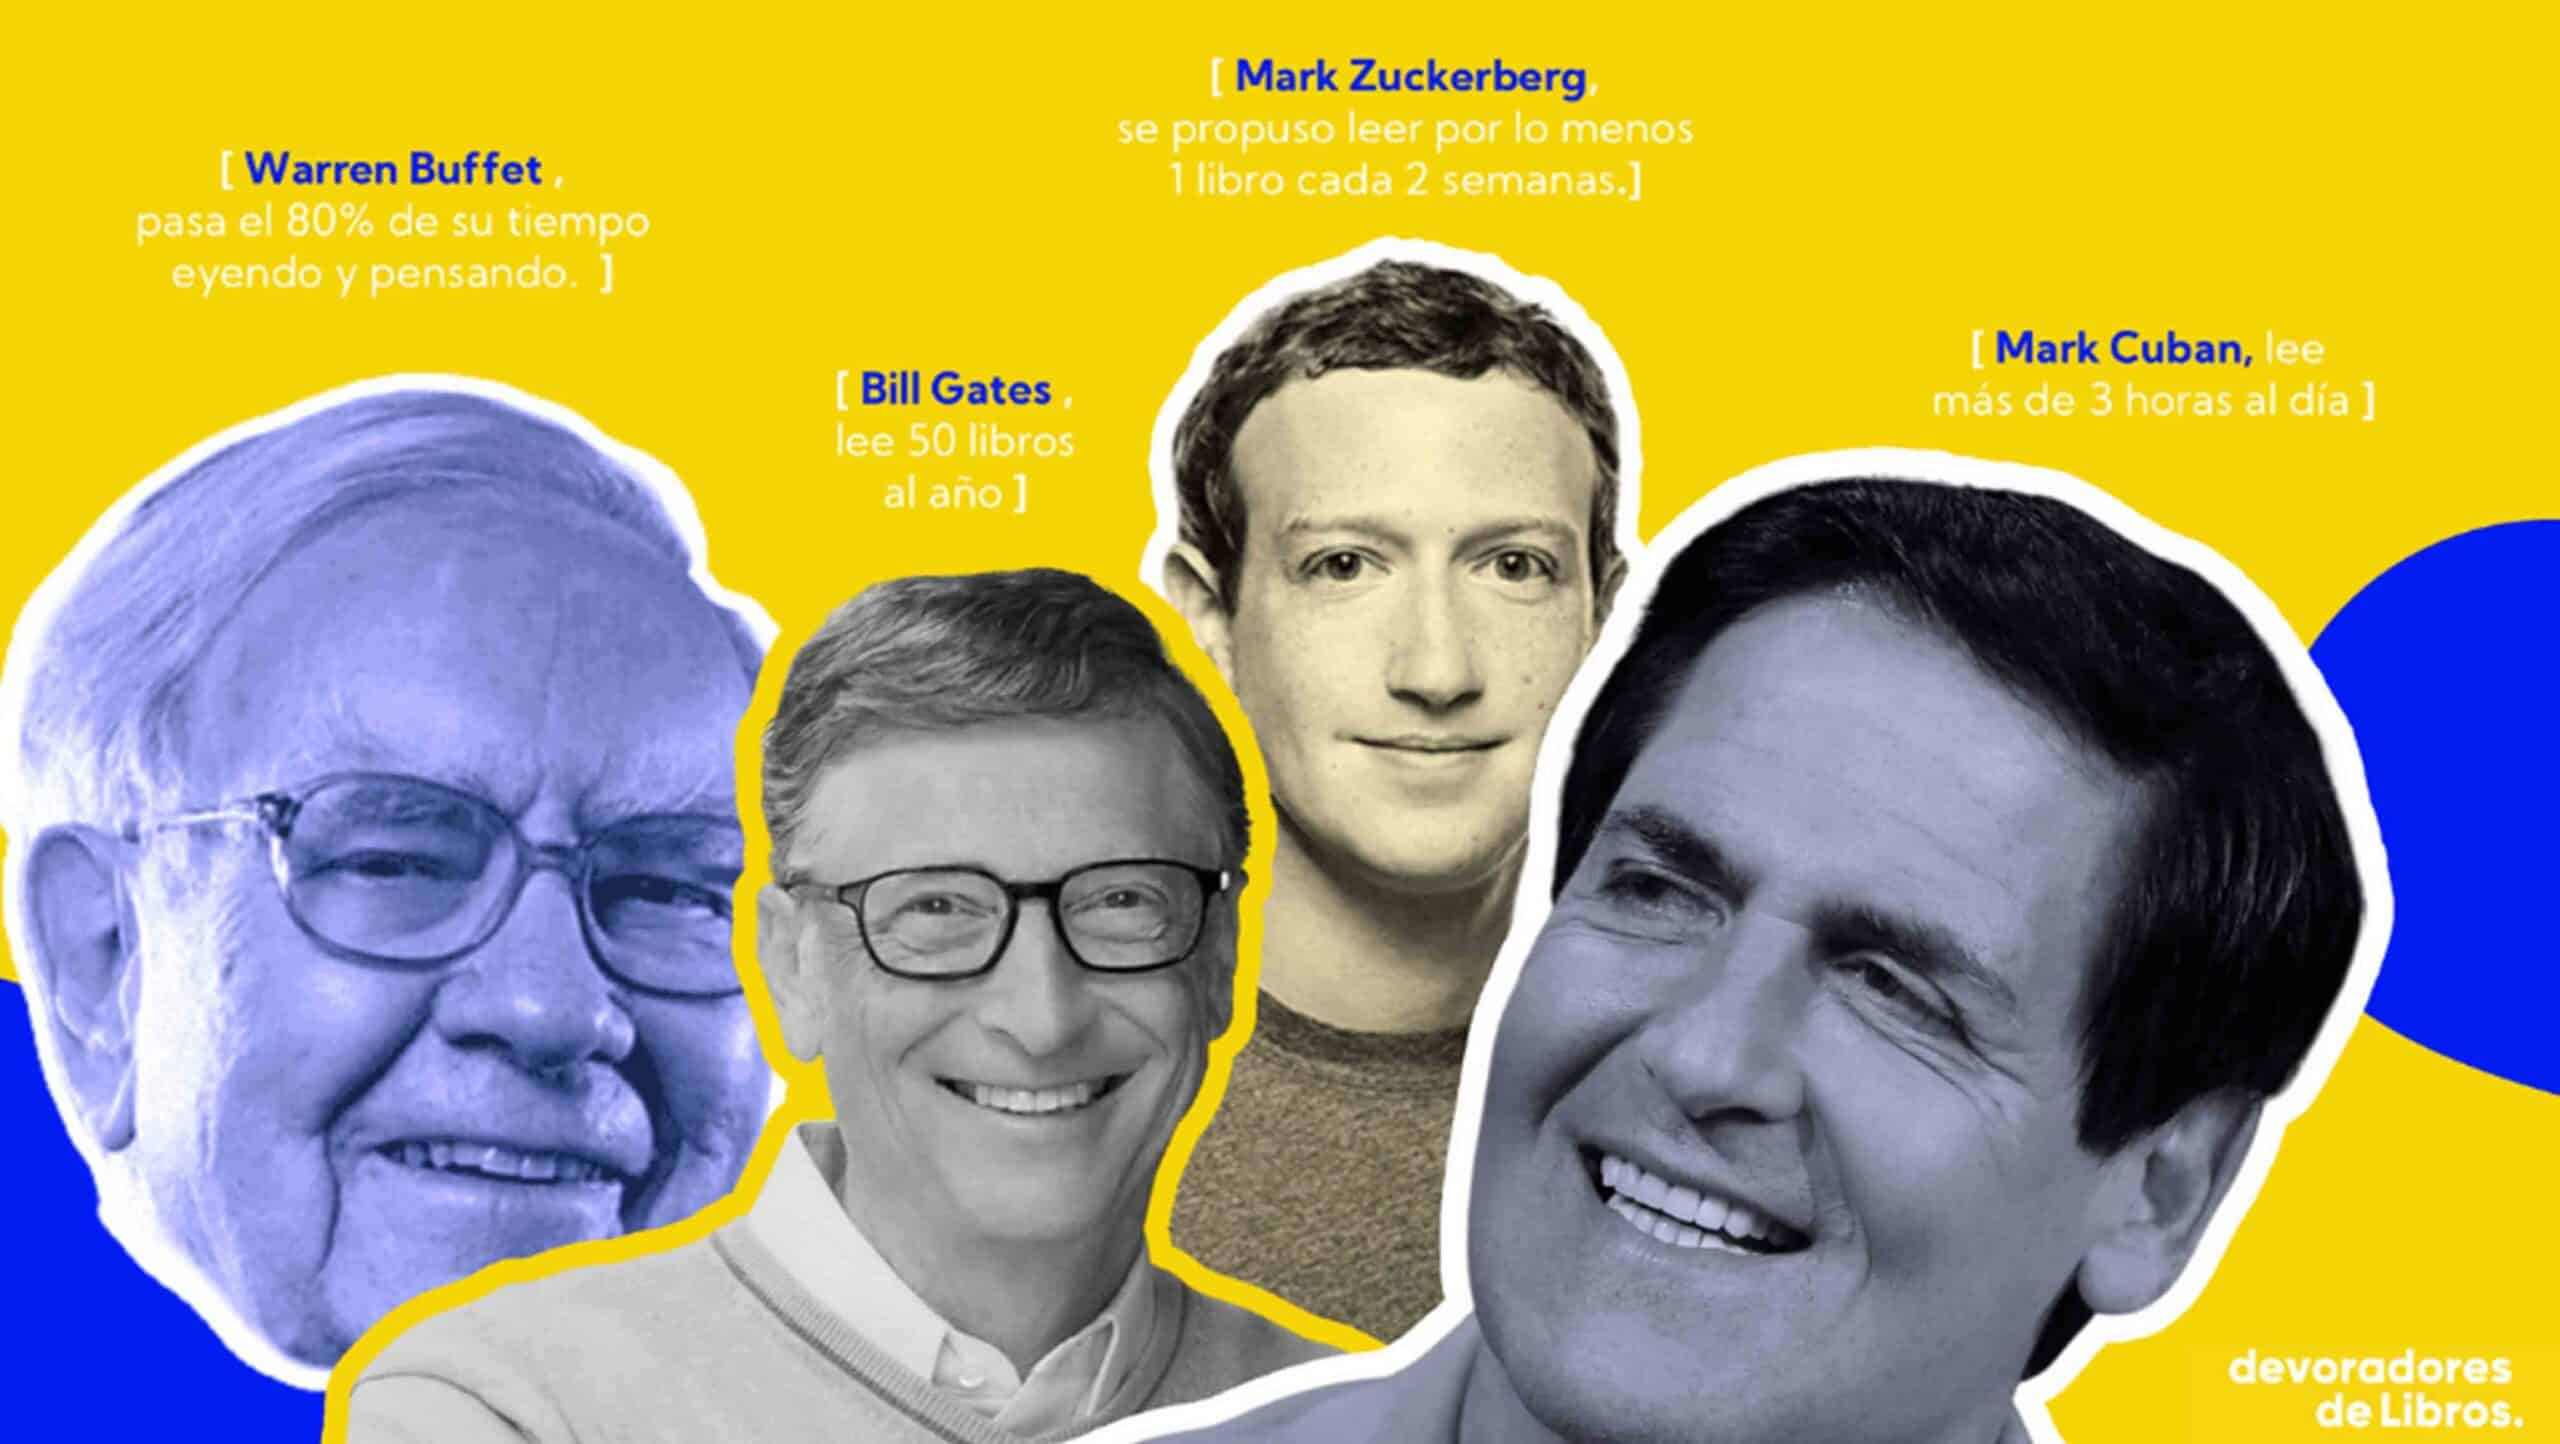 importancia de la lectura para grandes empresarios, warren buffet, mark zuckemberg, bill gates, mark cuban